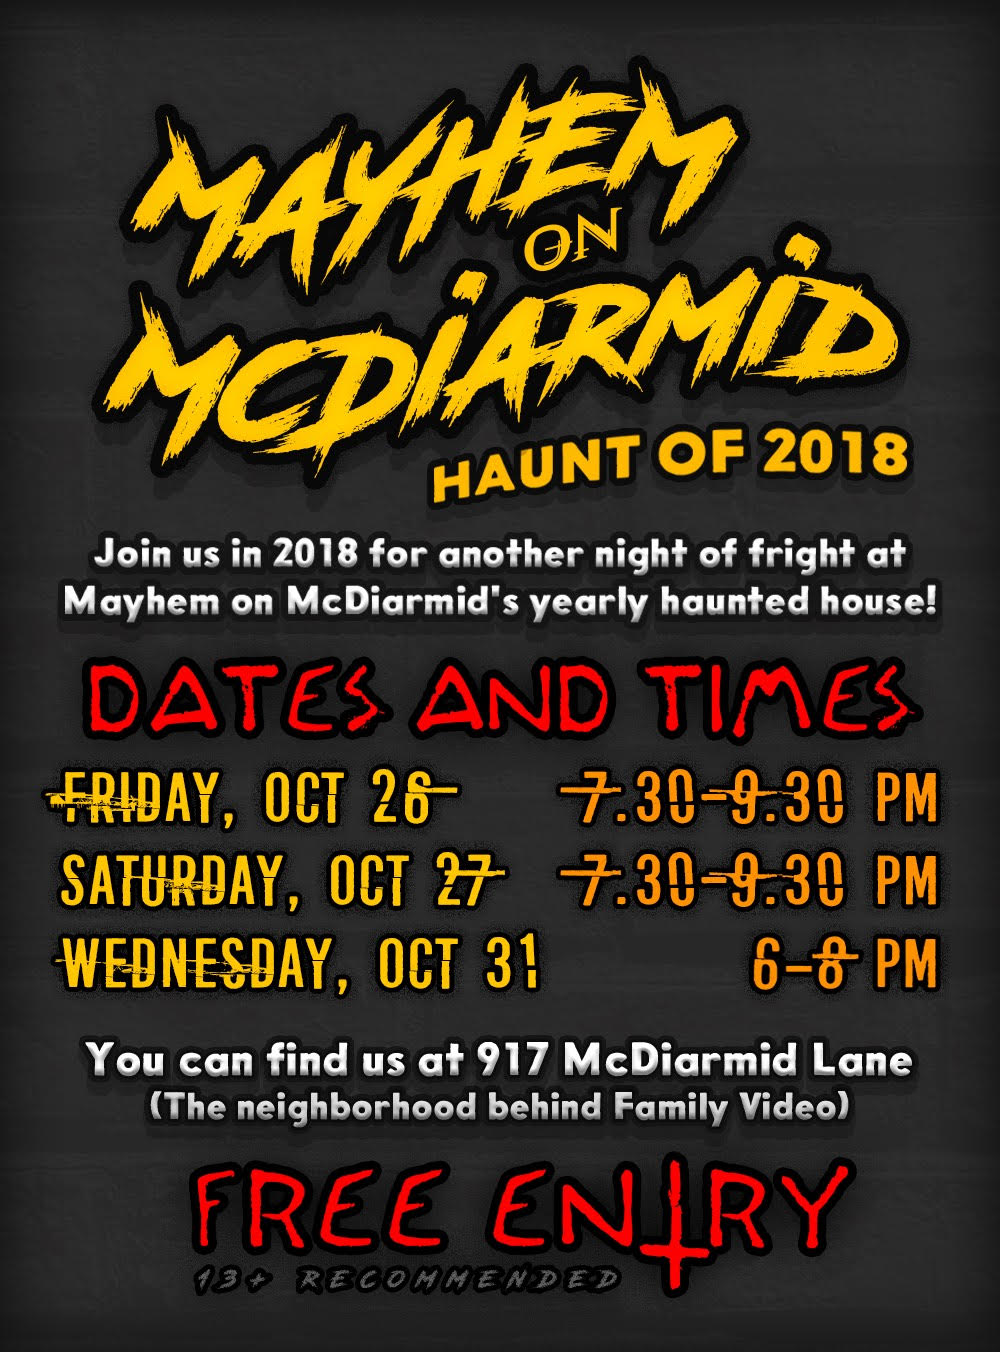 These are the dates and times for Mayhem at McDiarmid.